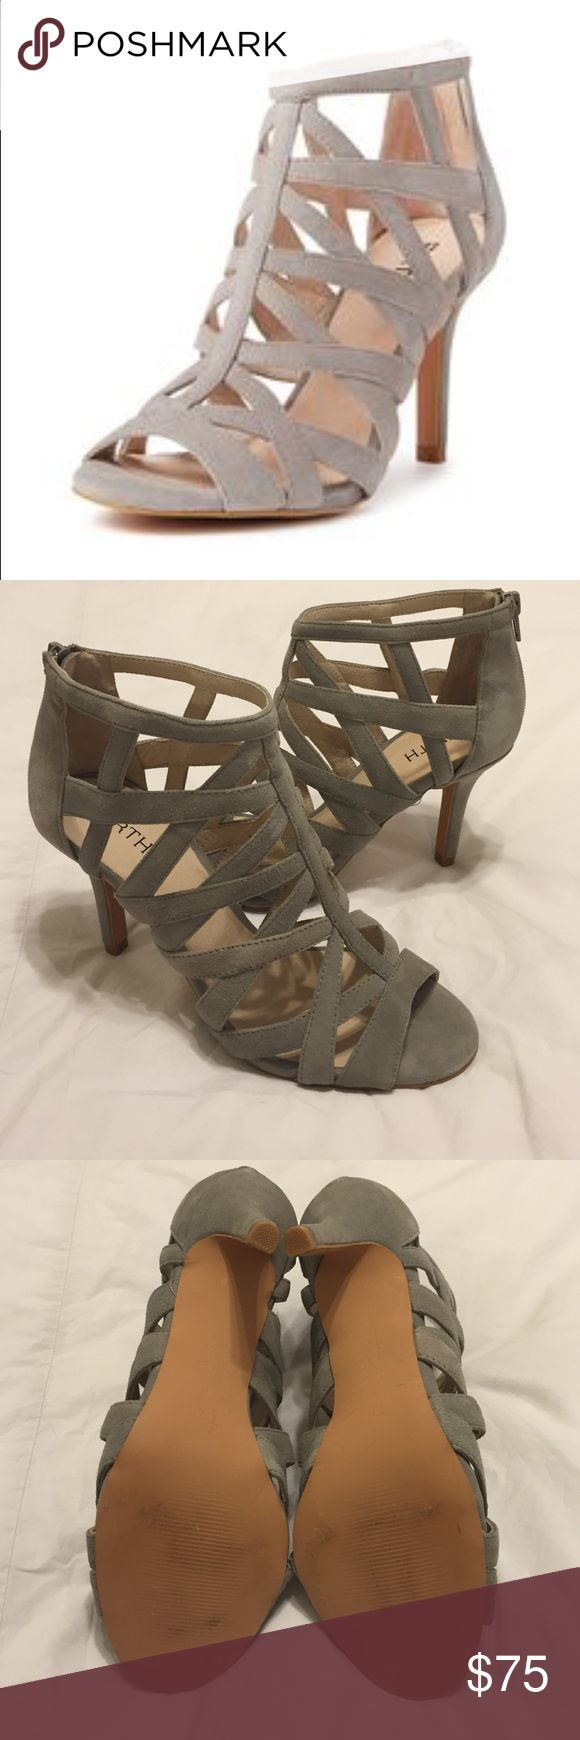 "FIRTH Callie cage heel sandal, light grey size 7.5 NWOT Beautiful, sexy sandals. Never worn. Great with dresses and jeans. Color is a soft dove grey and lined in a beige leather. Zipper closure in back, heel height is about 3 1/4"". There are couple of minor scuffs from trying on, see last photo. Reasonable offers welcome. Firth Shoes Heels"